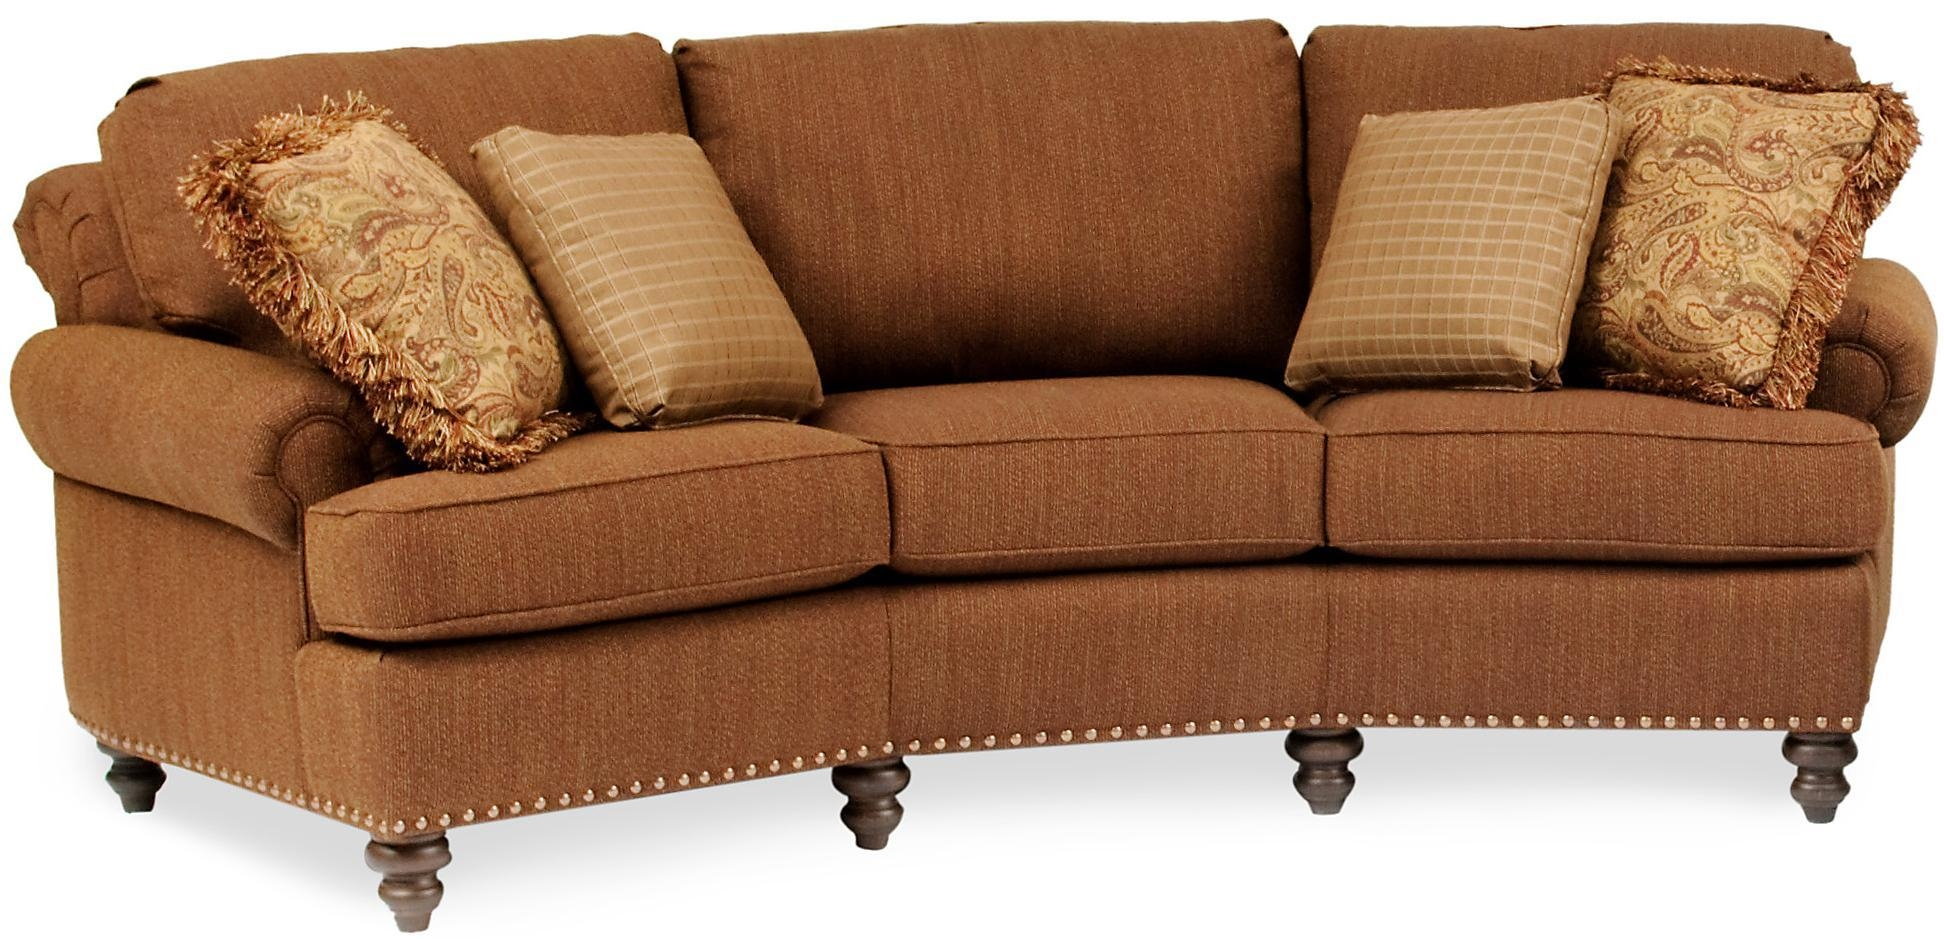 Curved Conversational Sofa With Nailhead Trimsmith Brothers Inside Smith Brothers Sofas (View 10 of 20)